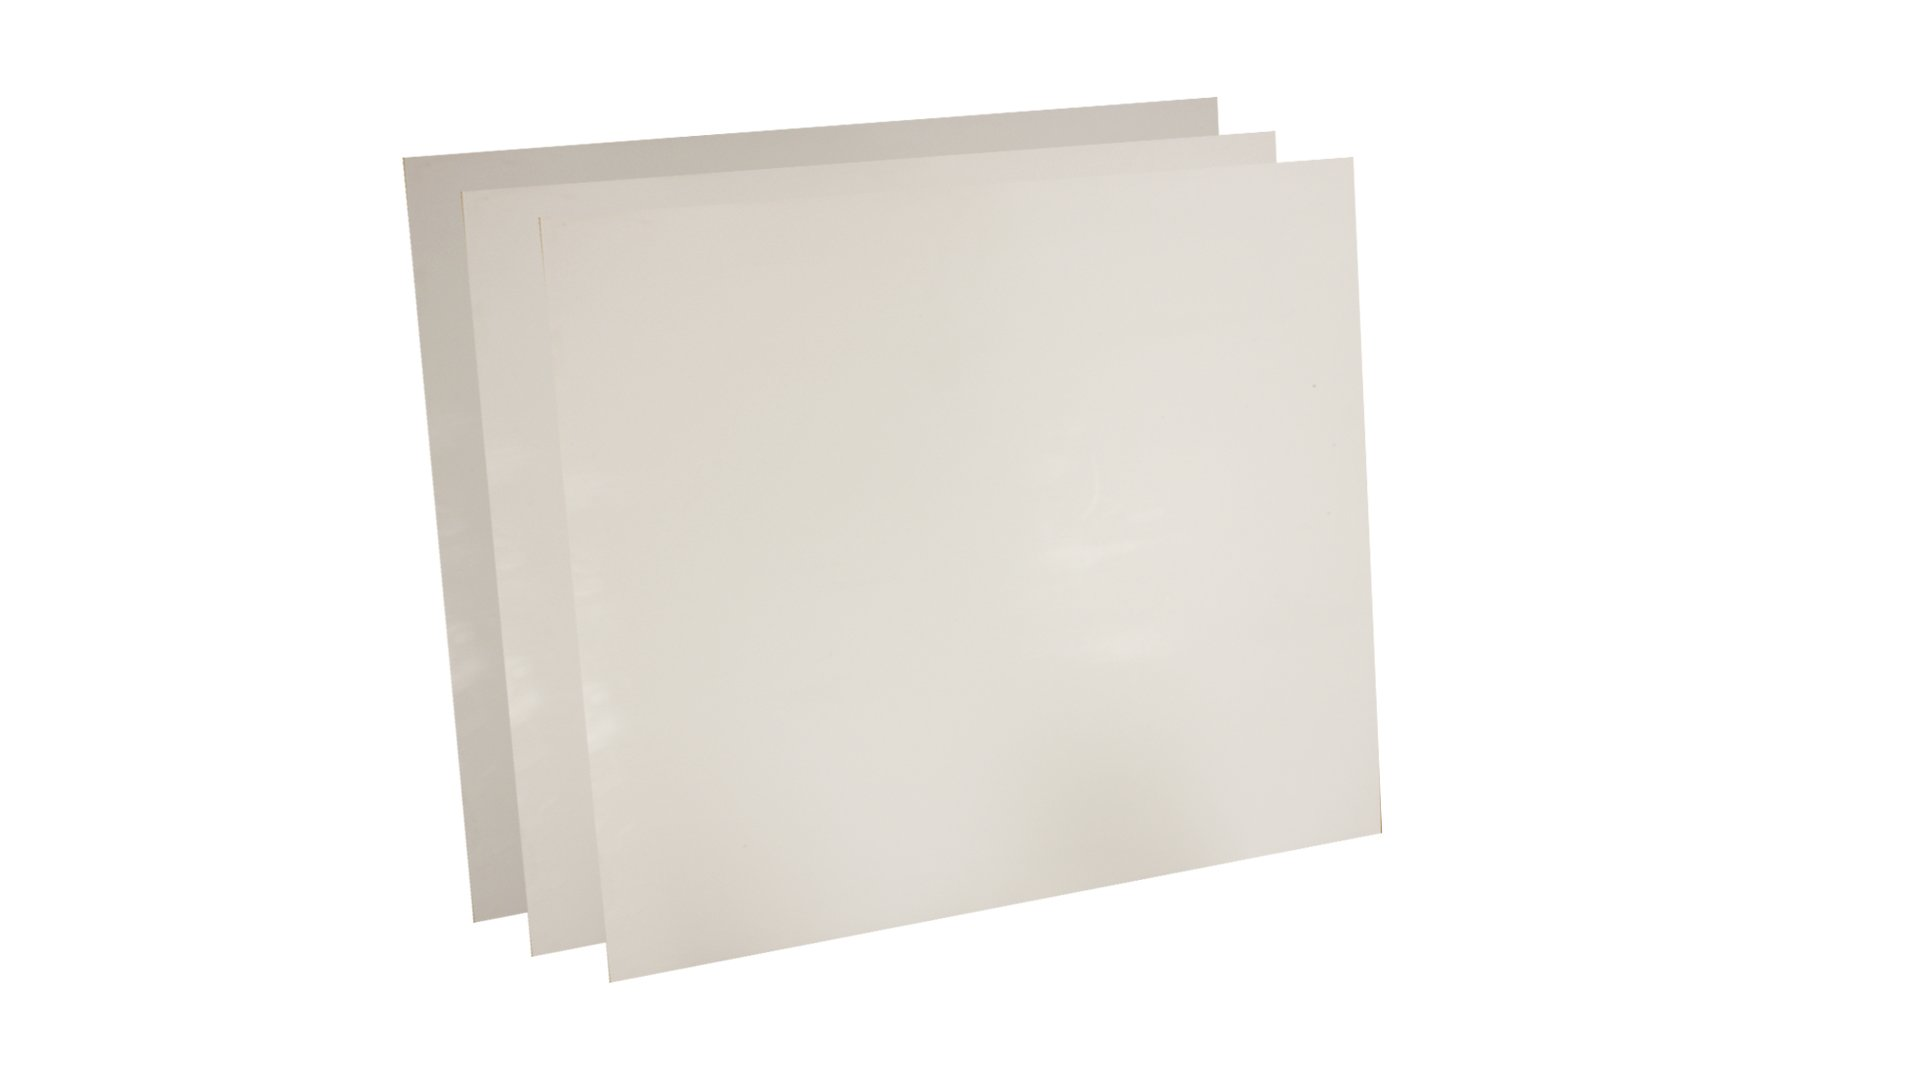 Sterling Seal 7530.5024x24x3 7530 Virgin Teflon Sheet, 1/2'' Thick, 24'' x 24'' (Pack of 3)